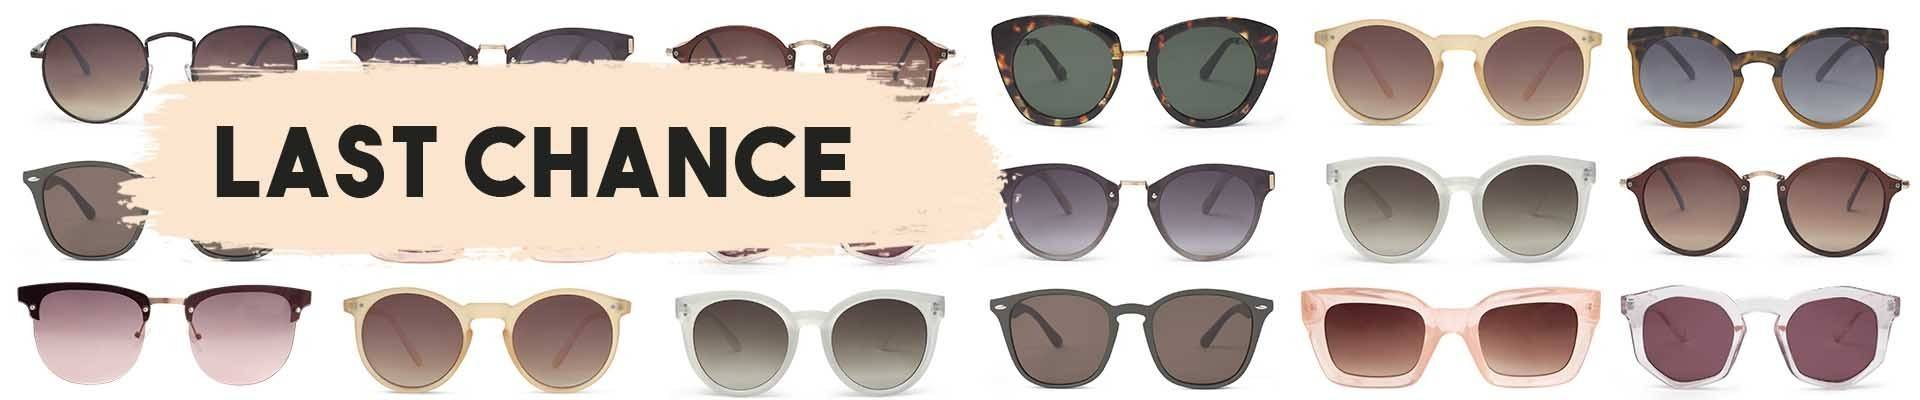 Outlet of Charly Therapy sunglasses